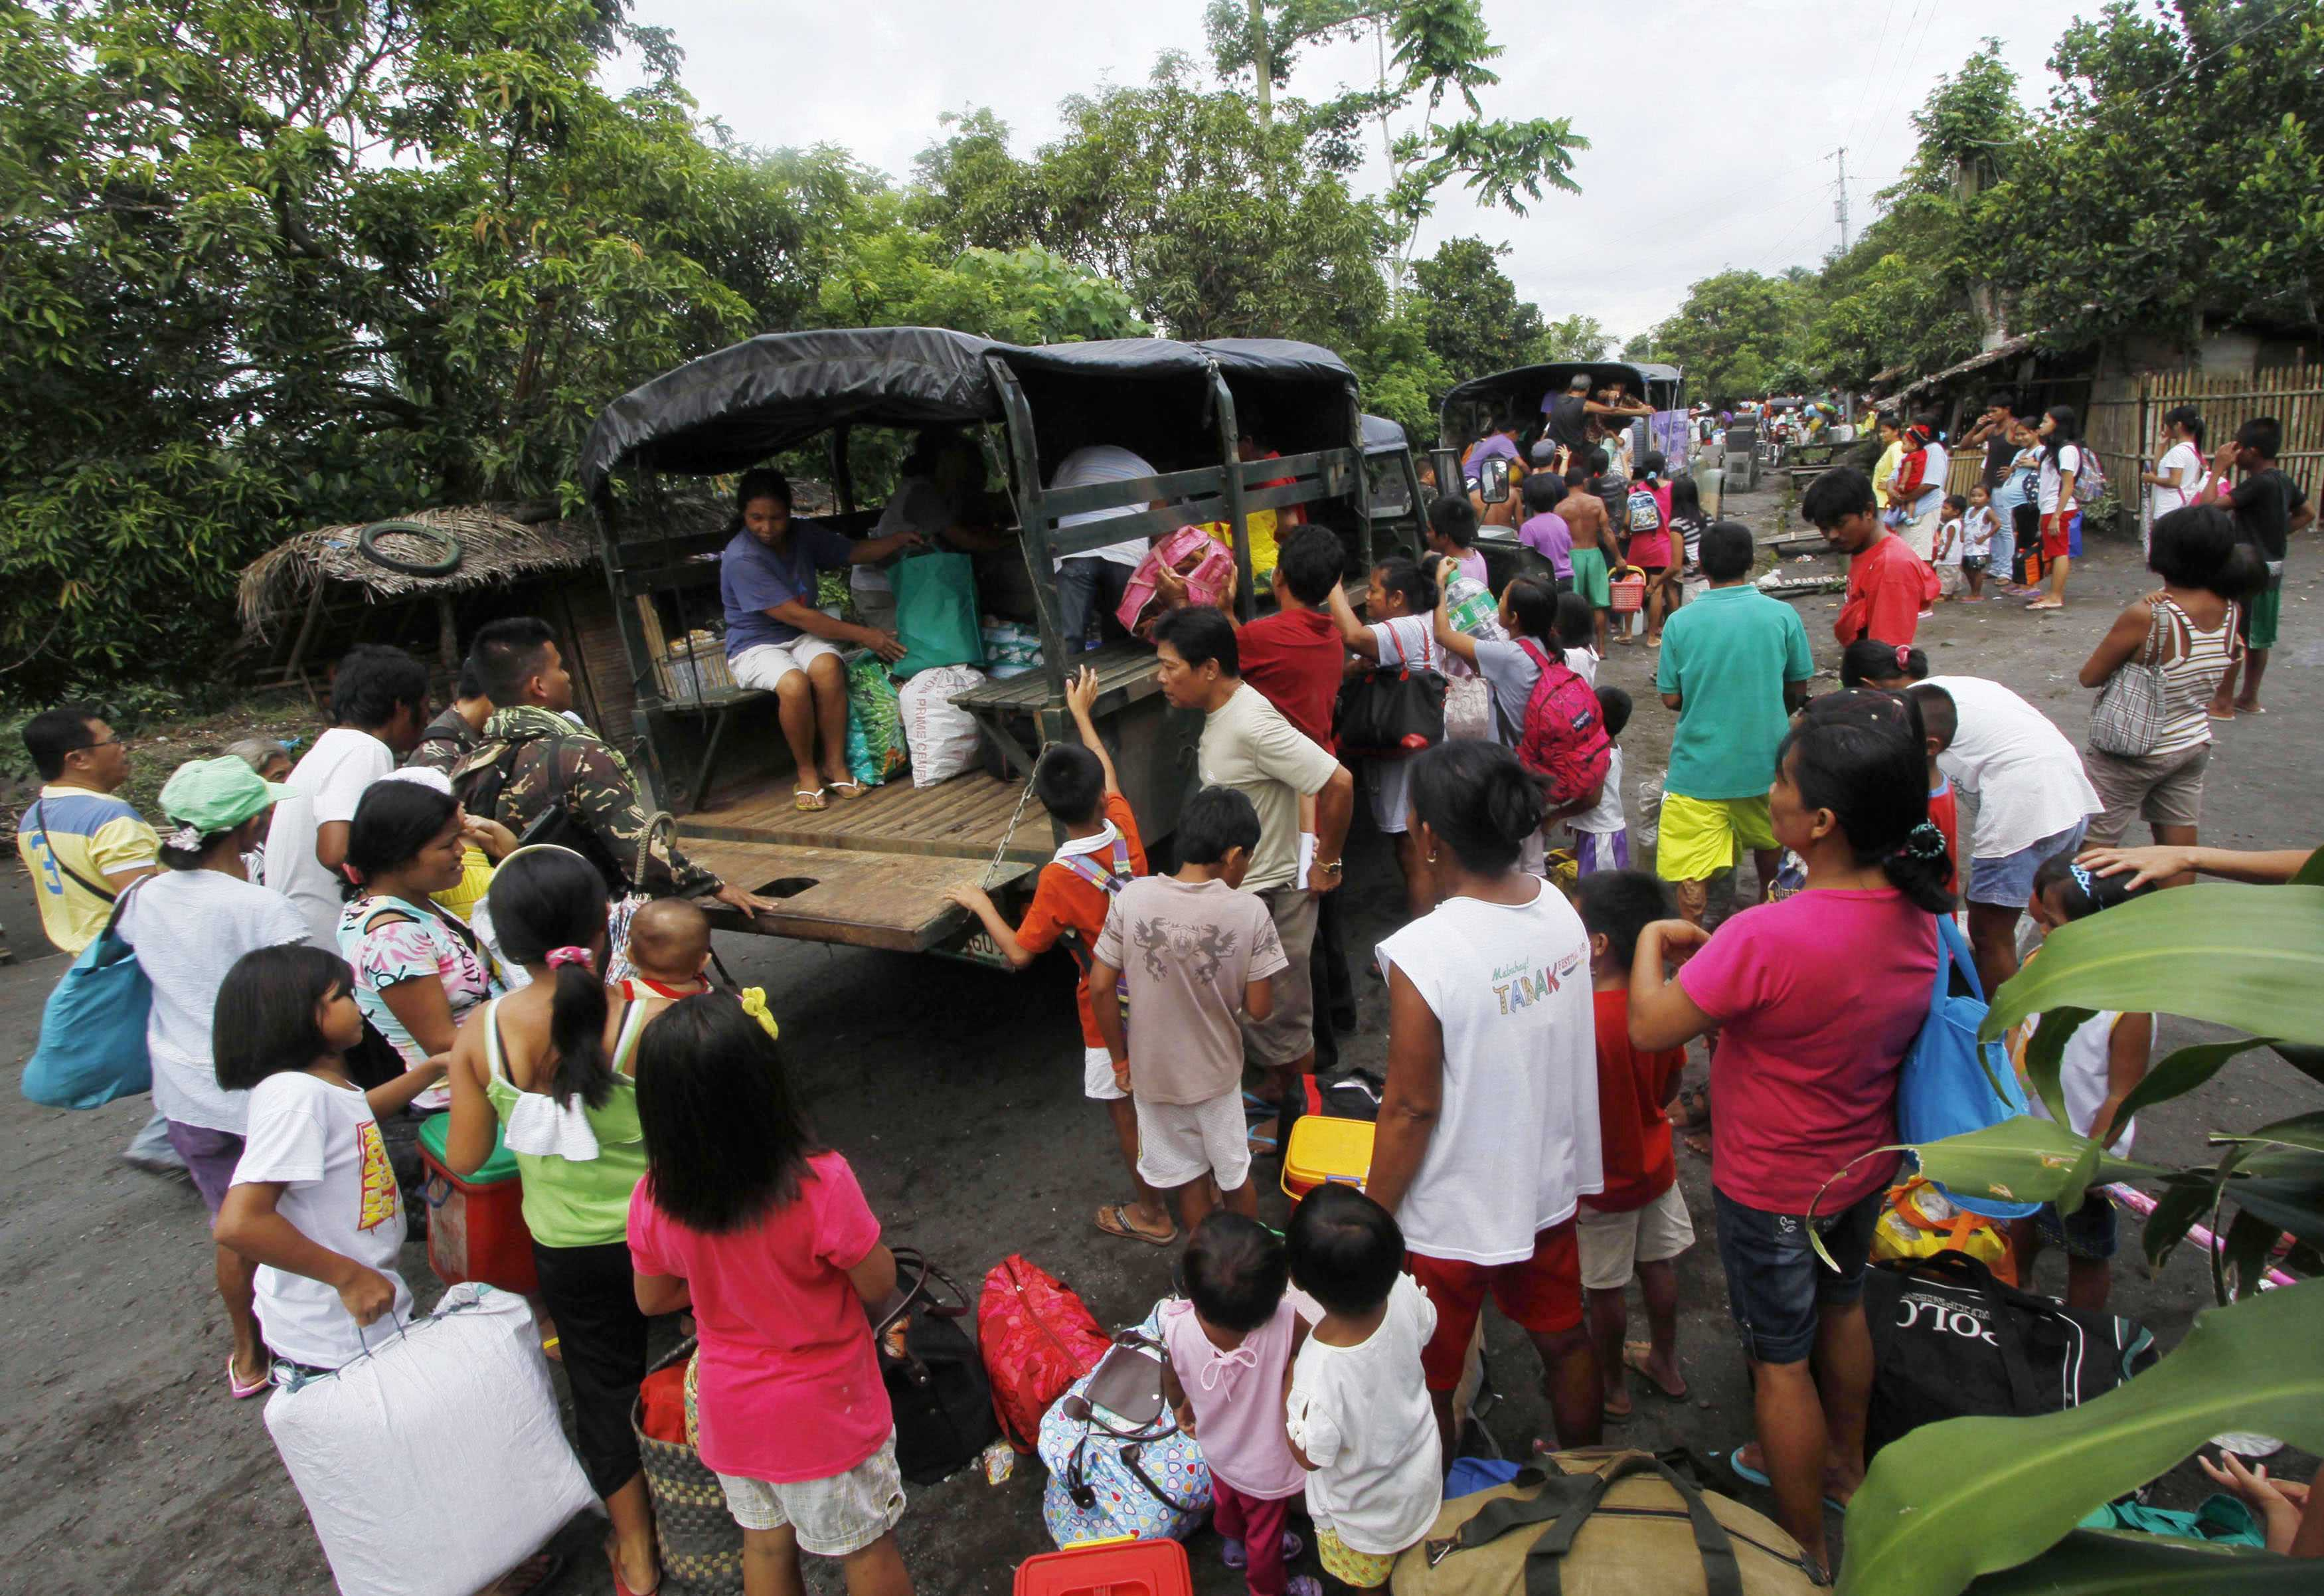 Residents with their belongings board a military truck as they evacuate their homes after the Mayon volcano spewed smoke in Albay province, Bicol region, south of Manila